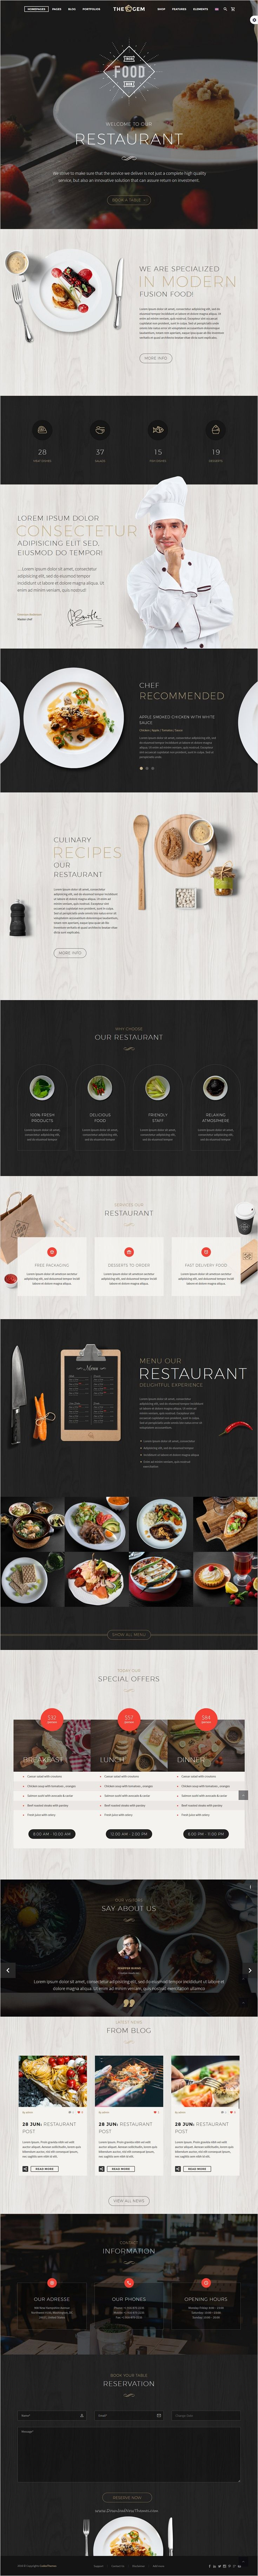 TheGem is a versatile #WordPress template with modern creative design for #restaurant business website with 40+ stunning homepage layouts download now➩ https://themeforest.net/item/thegem-creative-multipurpose-wordpress-theme/16061685?ref=Datasata